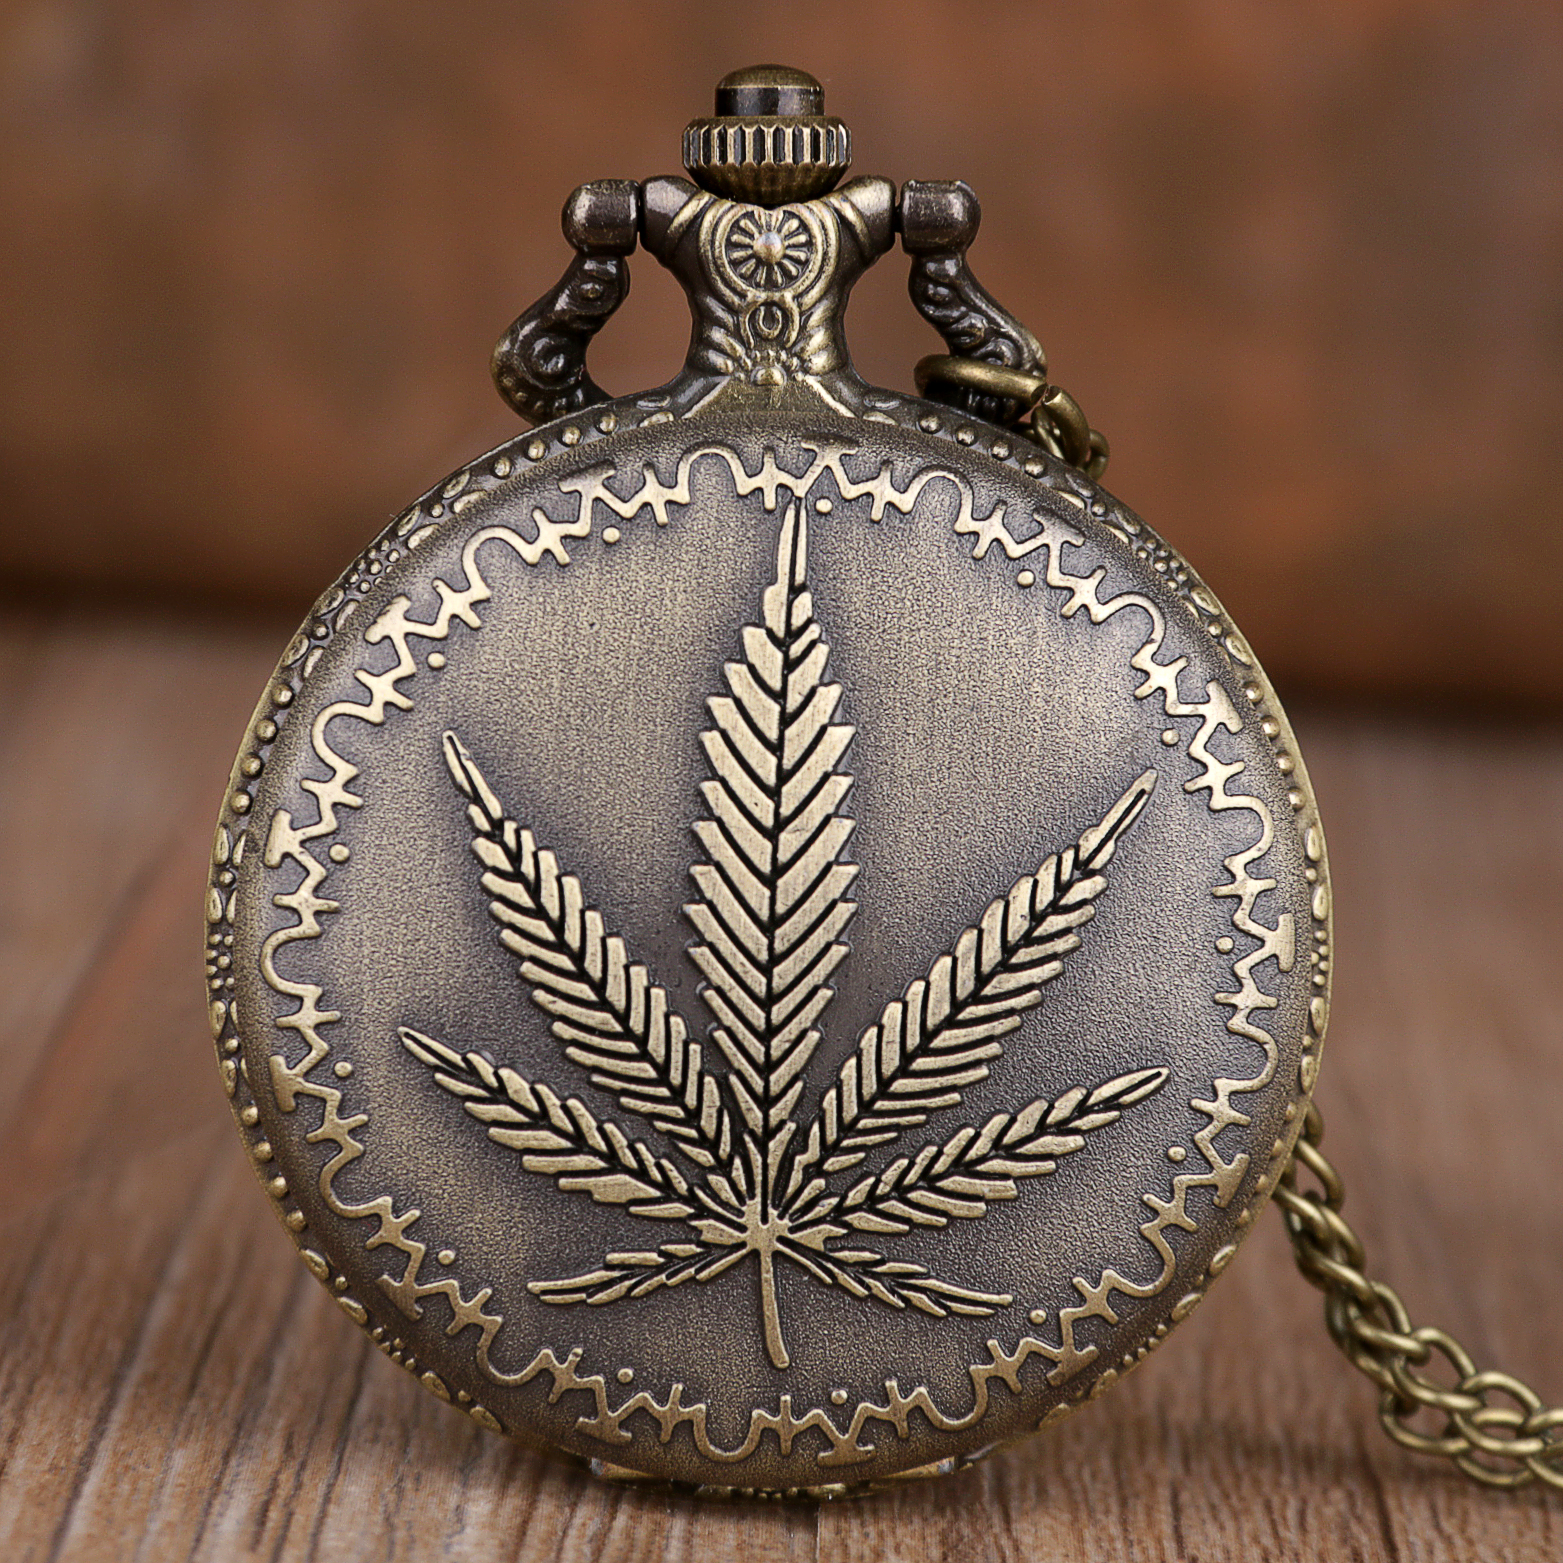 2019 New Popular Retro Pocket Watches Men Women Vintage Maple Leaf Pocket Watches Pendant Necklace Chain Fob Watches